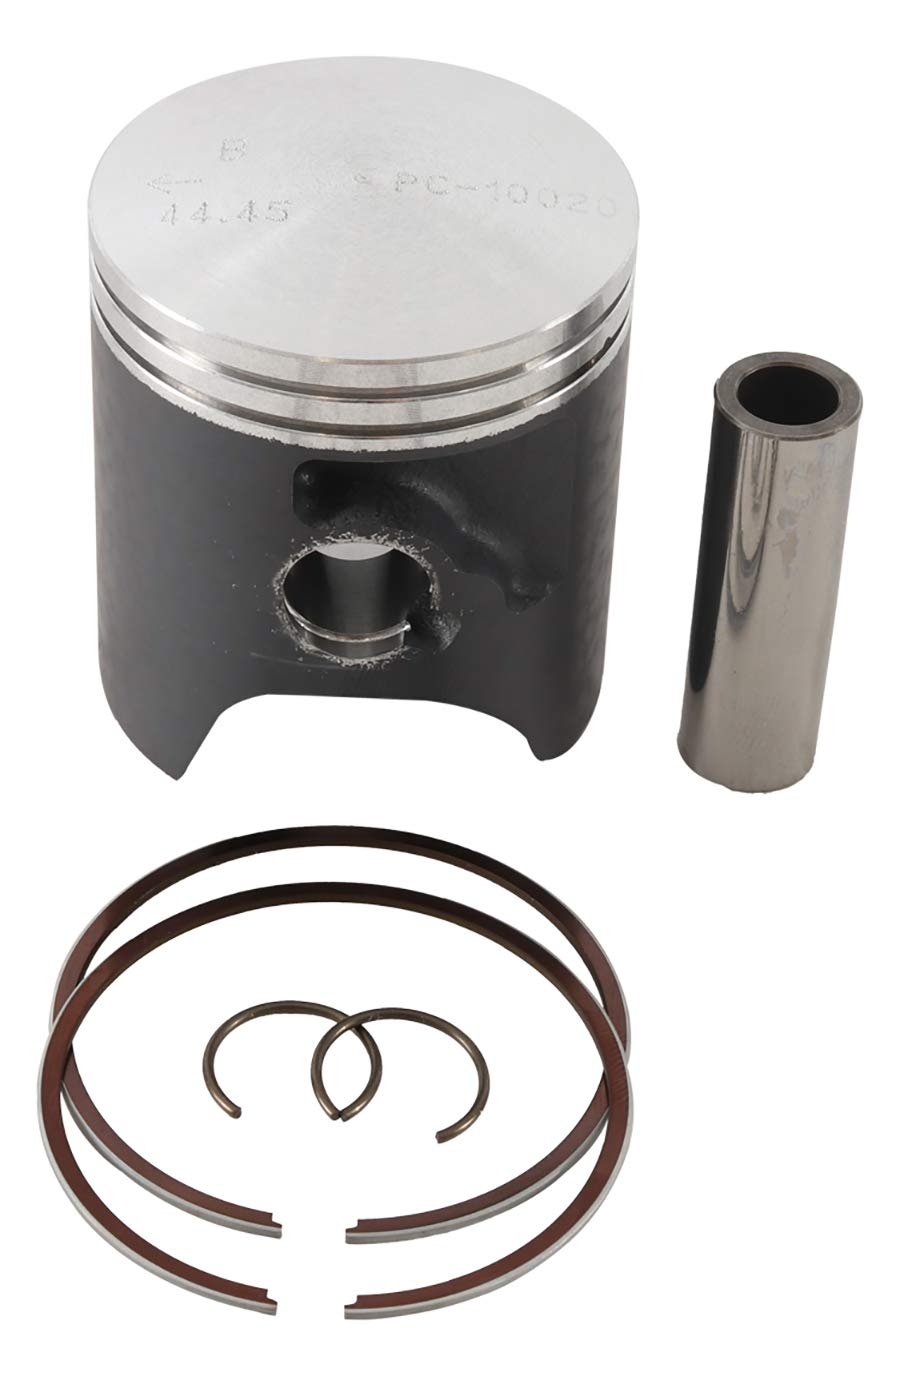 New Piston Kit Std Bore 44.45mm PC18-1019-B for Suzuki RM 65 03 04 05 06 2003 2004 2005 2006 by Powersports Connection (Image #1)